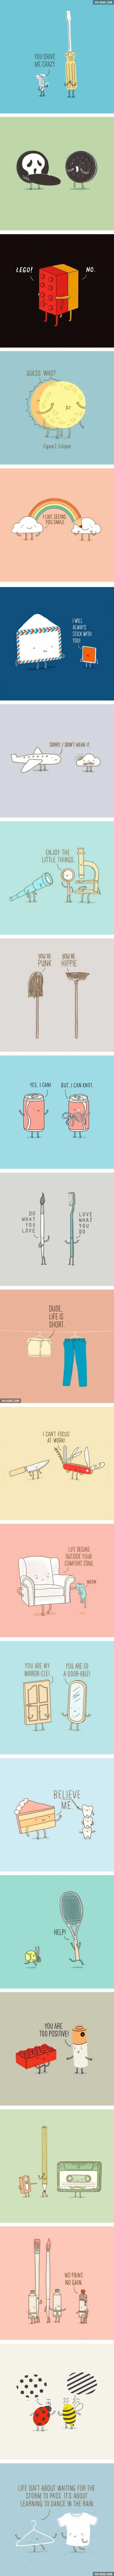 The Cutest Conversations Between Everyday's Objects (By Lim Heng Swee)   DailyFailCenter